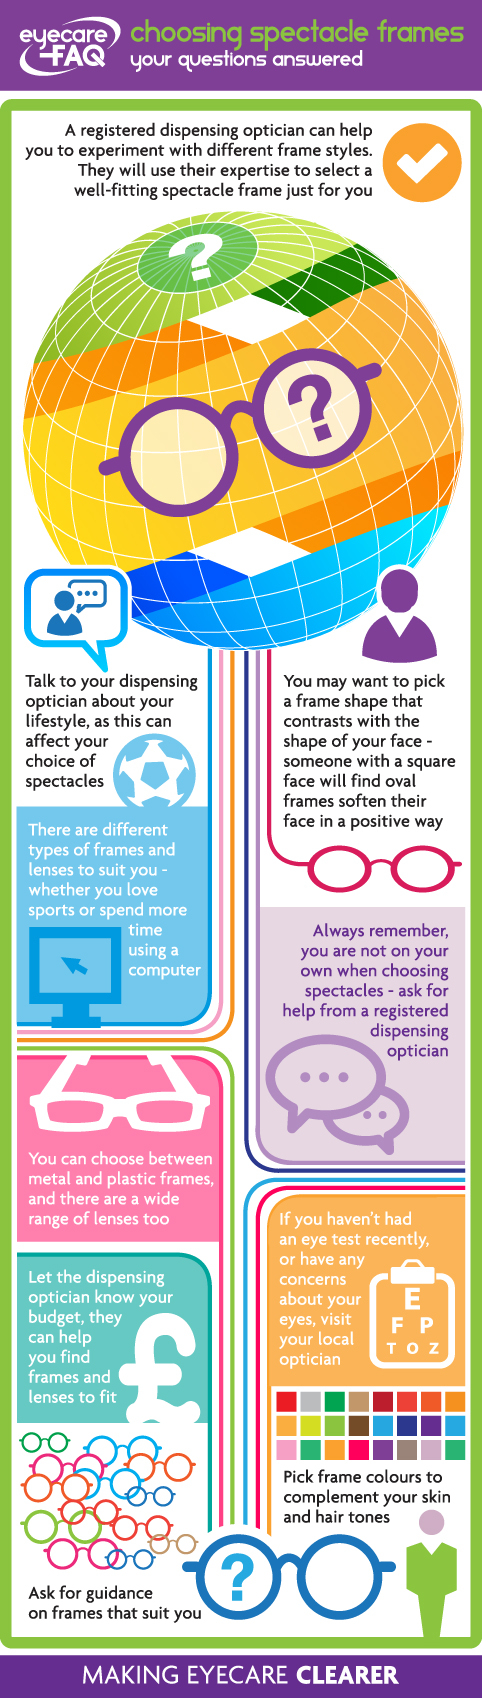 Choosing your Spectacle Frames